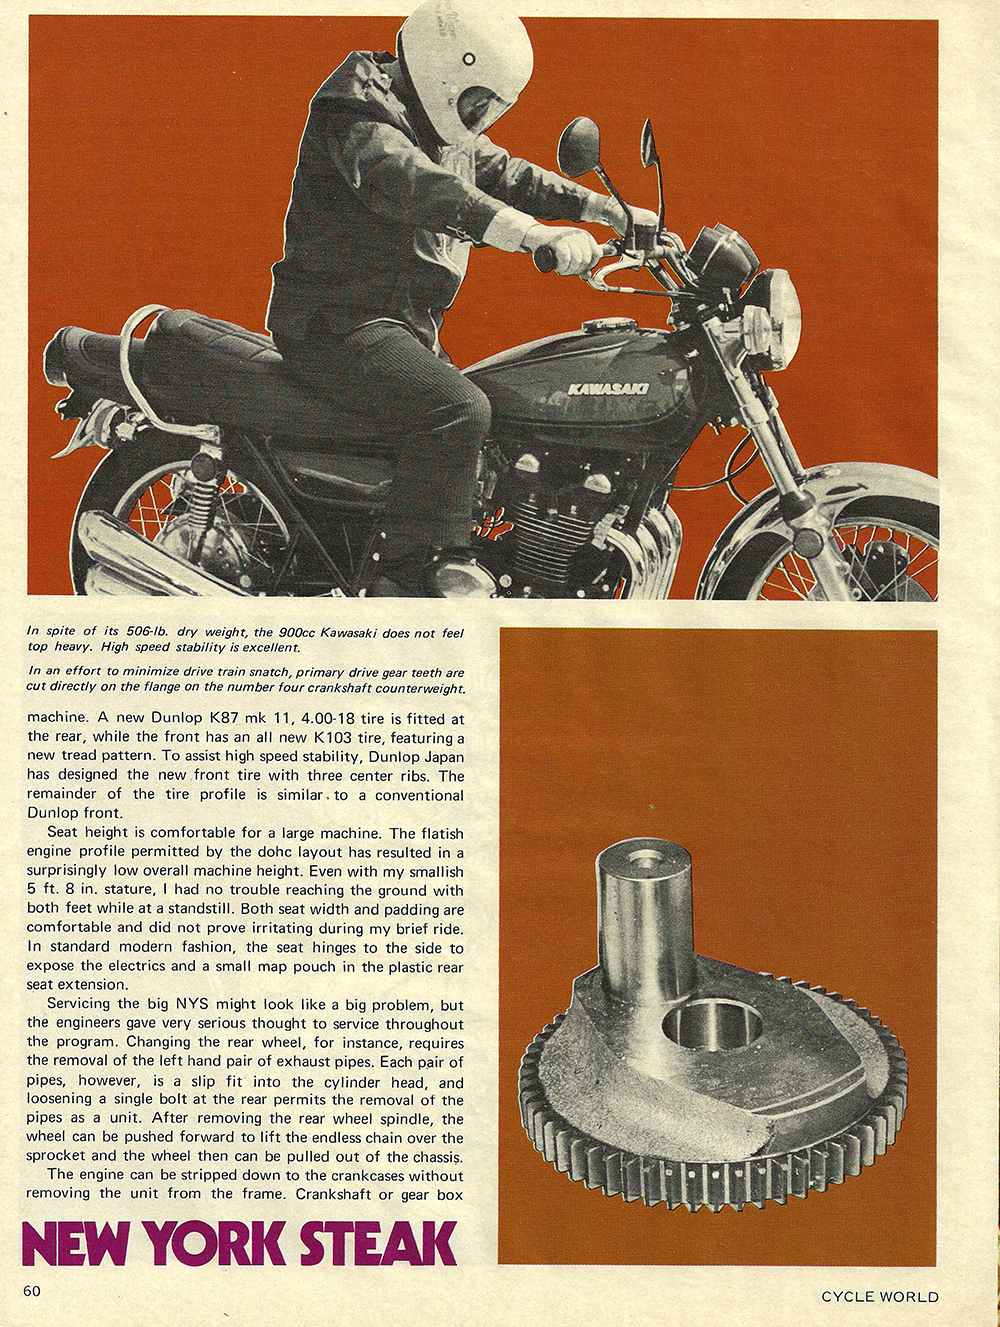 1972 Kawasaki Z1 900 New York Steak road test 05.jpg